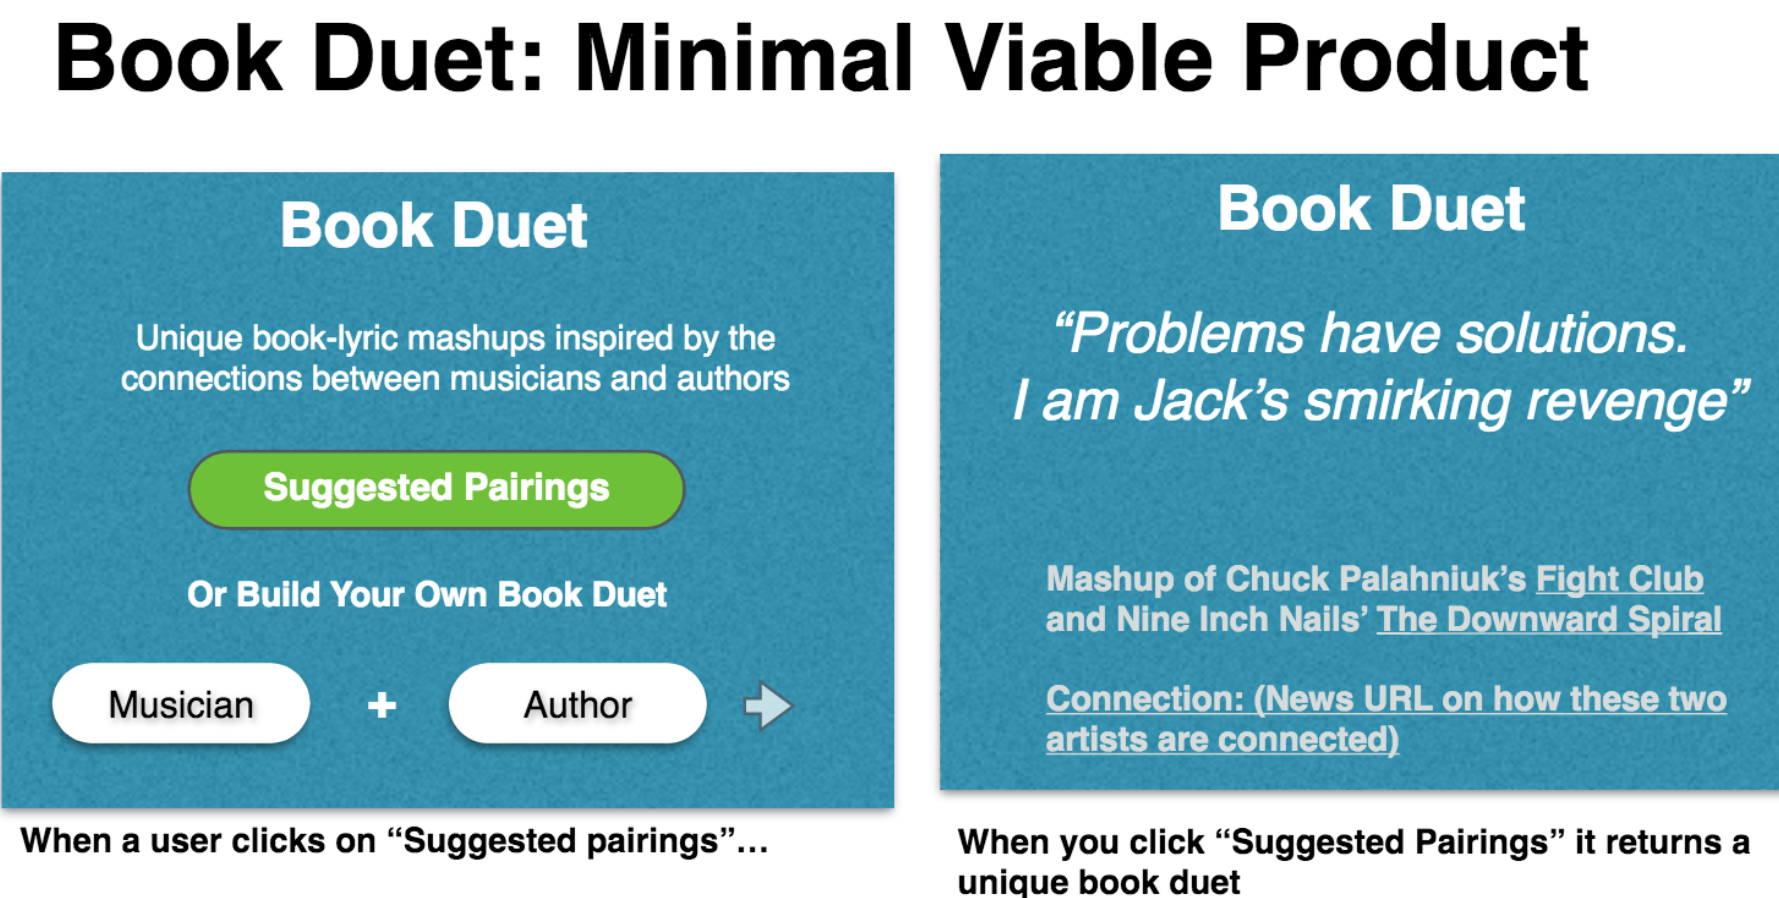 App mockup that describes Book Duets as